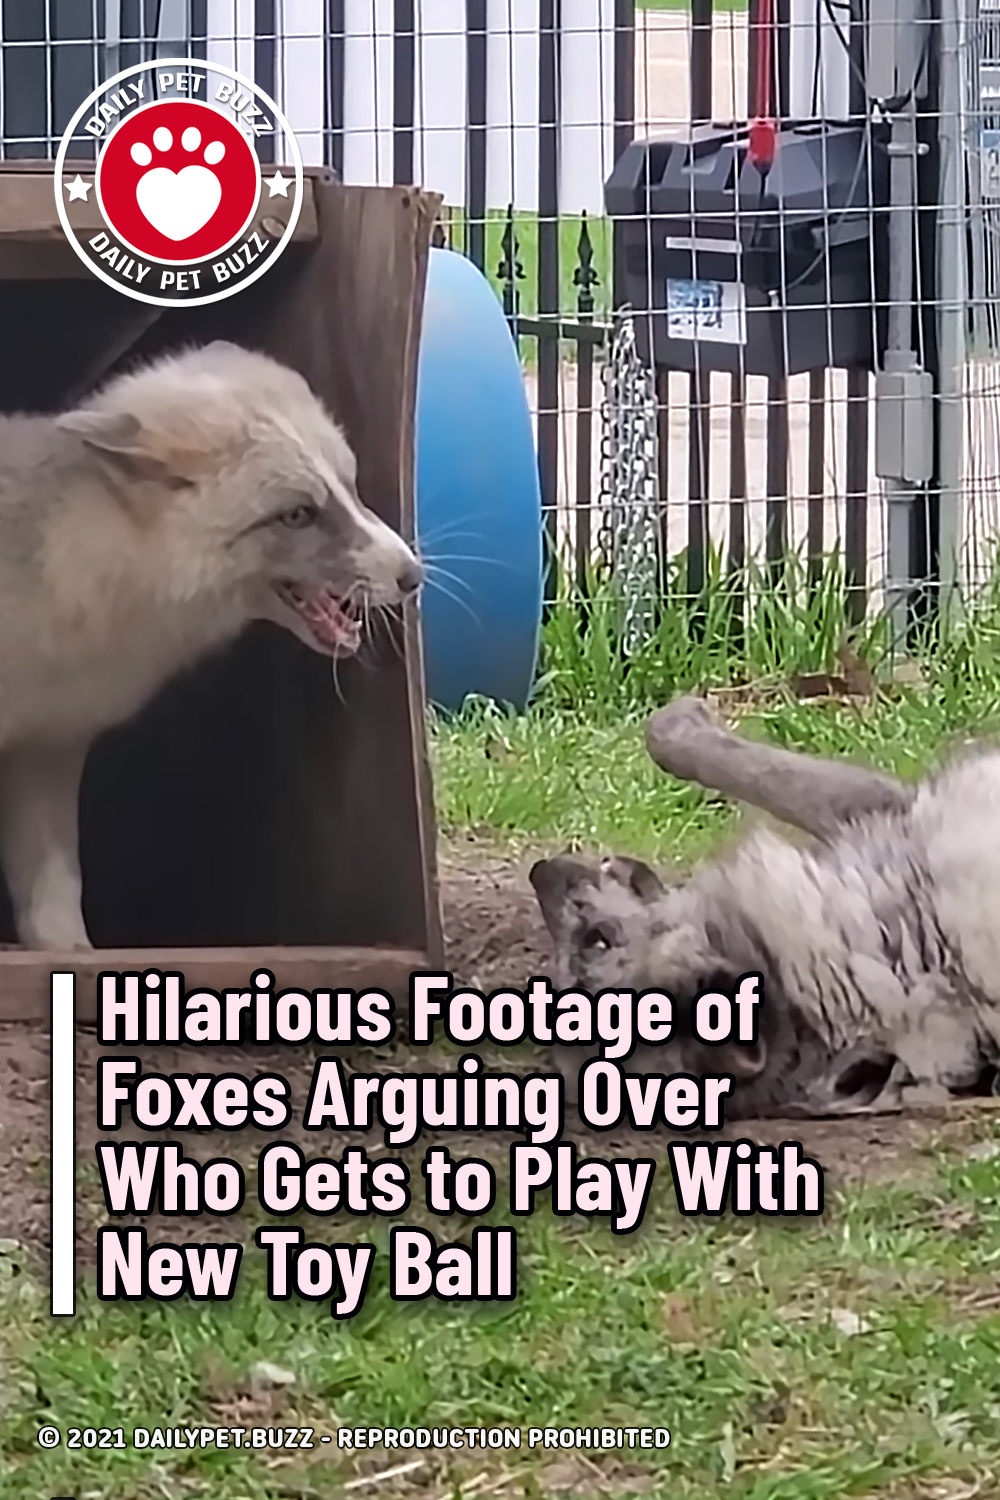 Hilarious Footage of Foxes Arguing Over Who Gets to Play With New Toy Ball